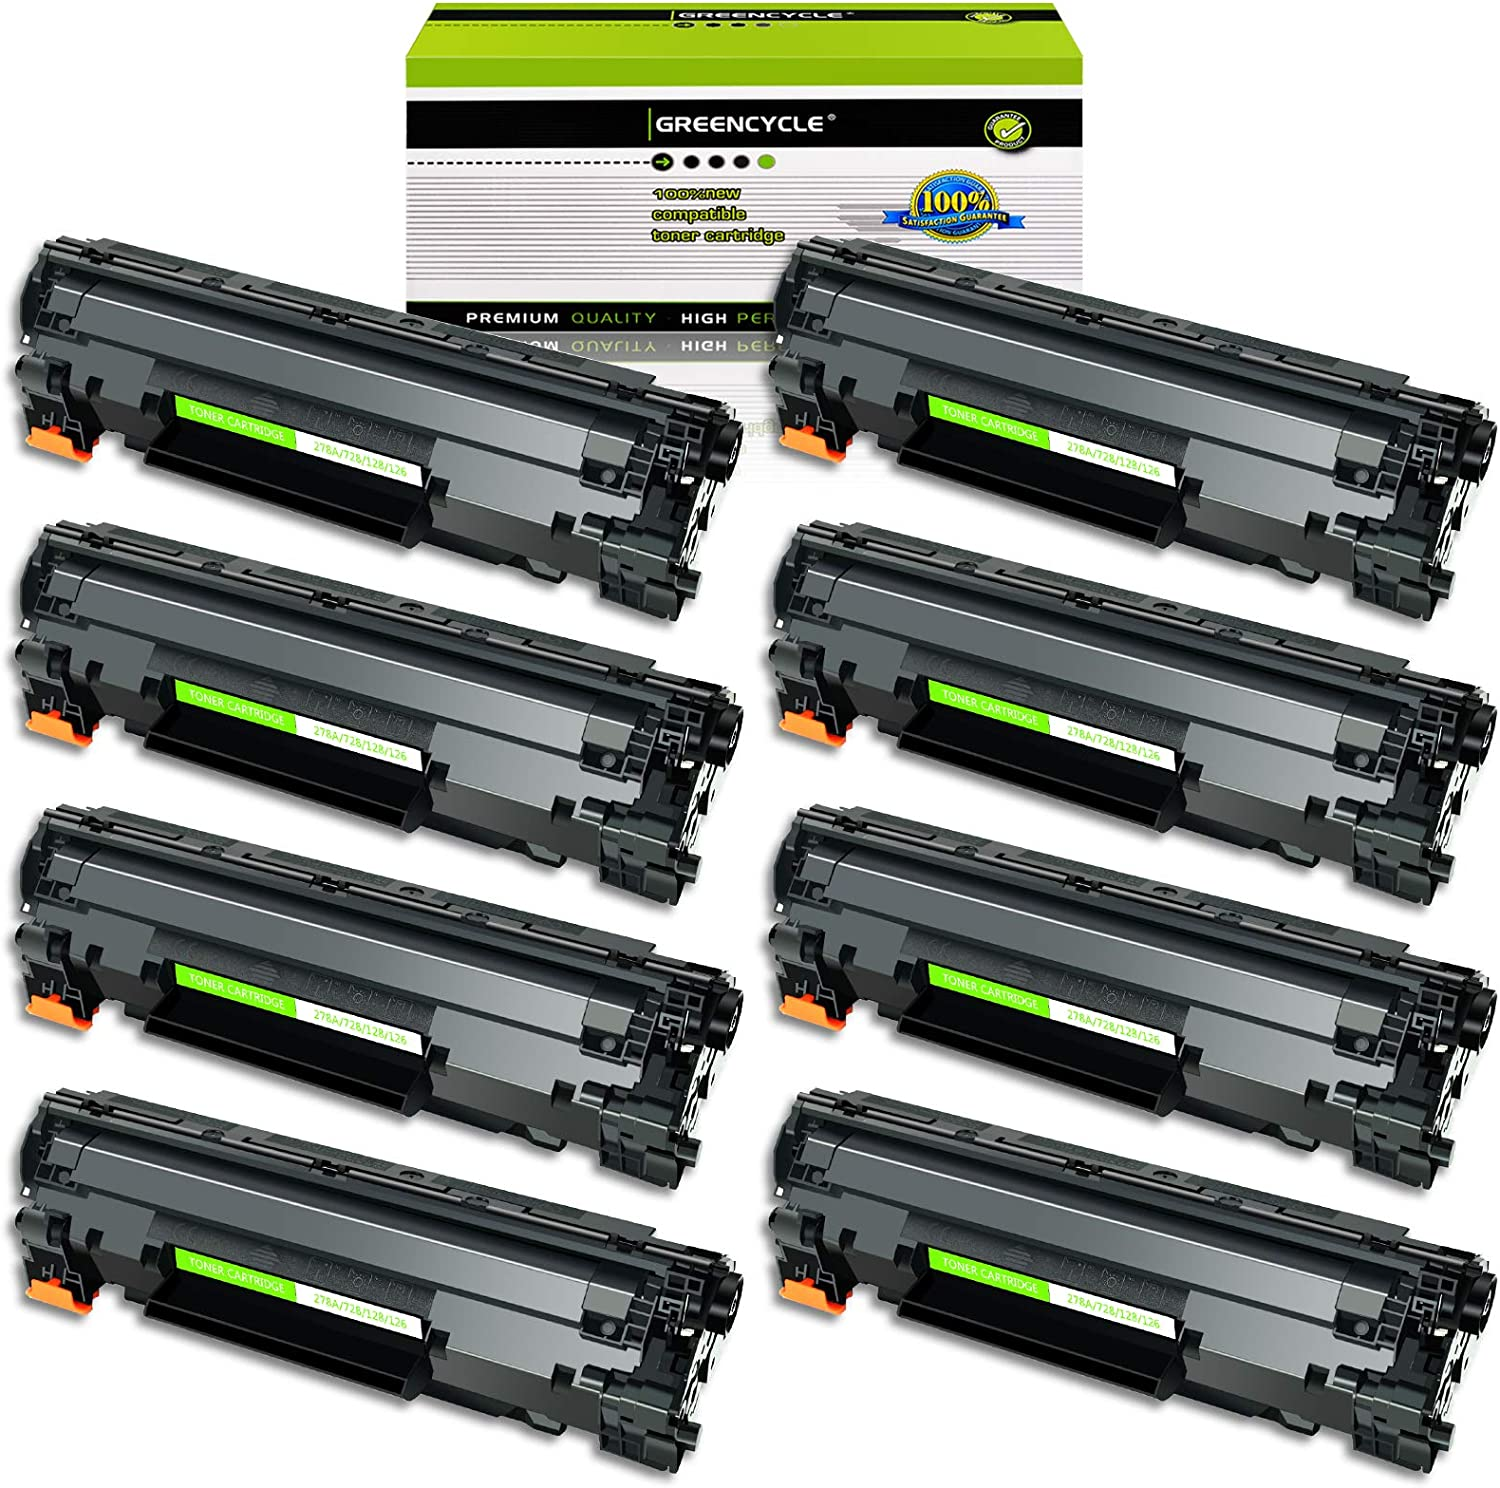 3500B001AA Black Toners use in Imageclass D530 MF4580dn MF4412 GREENCYCLE 8 PK Toner Cartridge Replacement Compatible for Canon 128